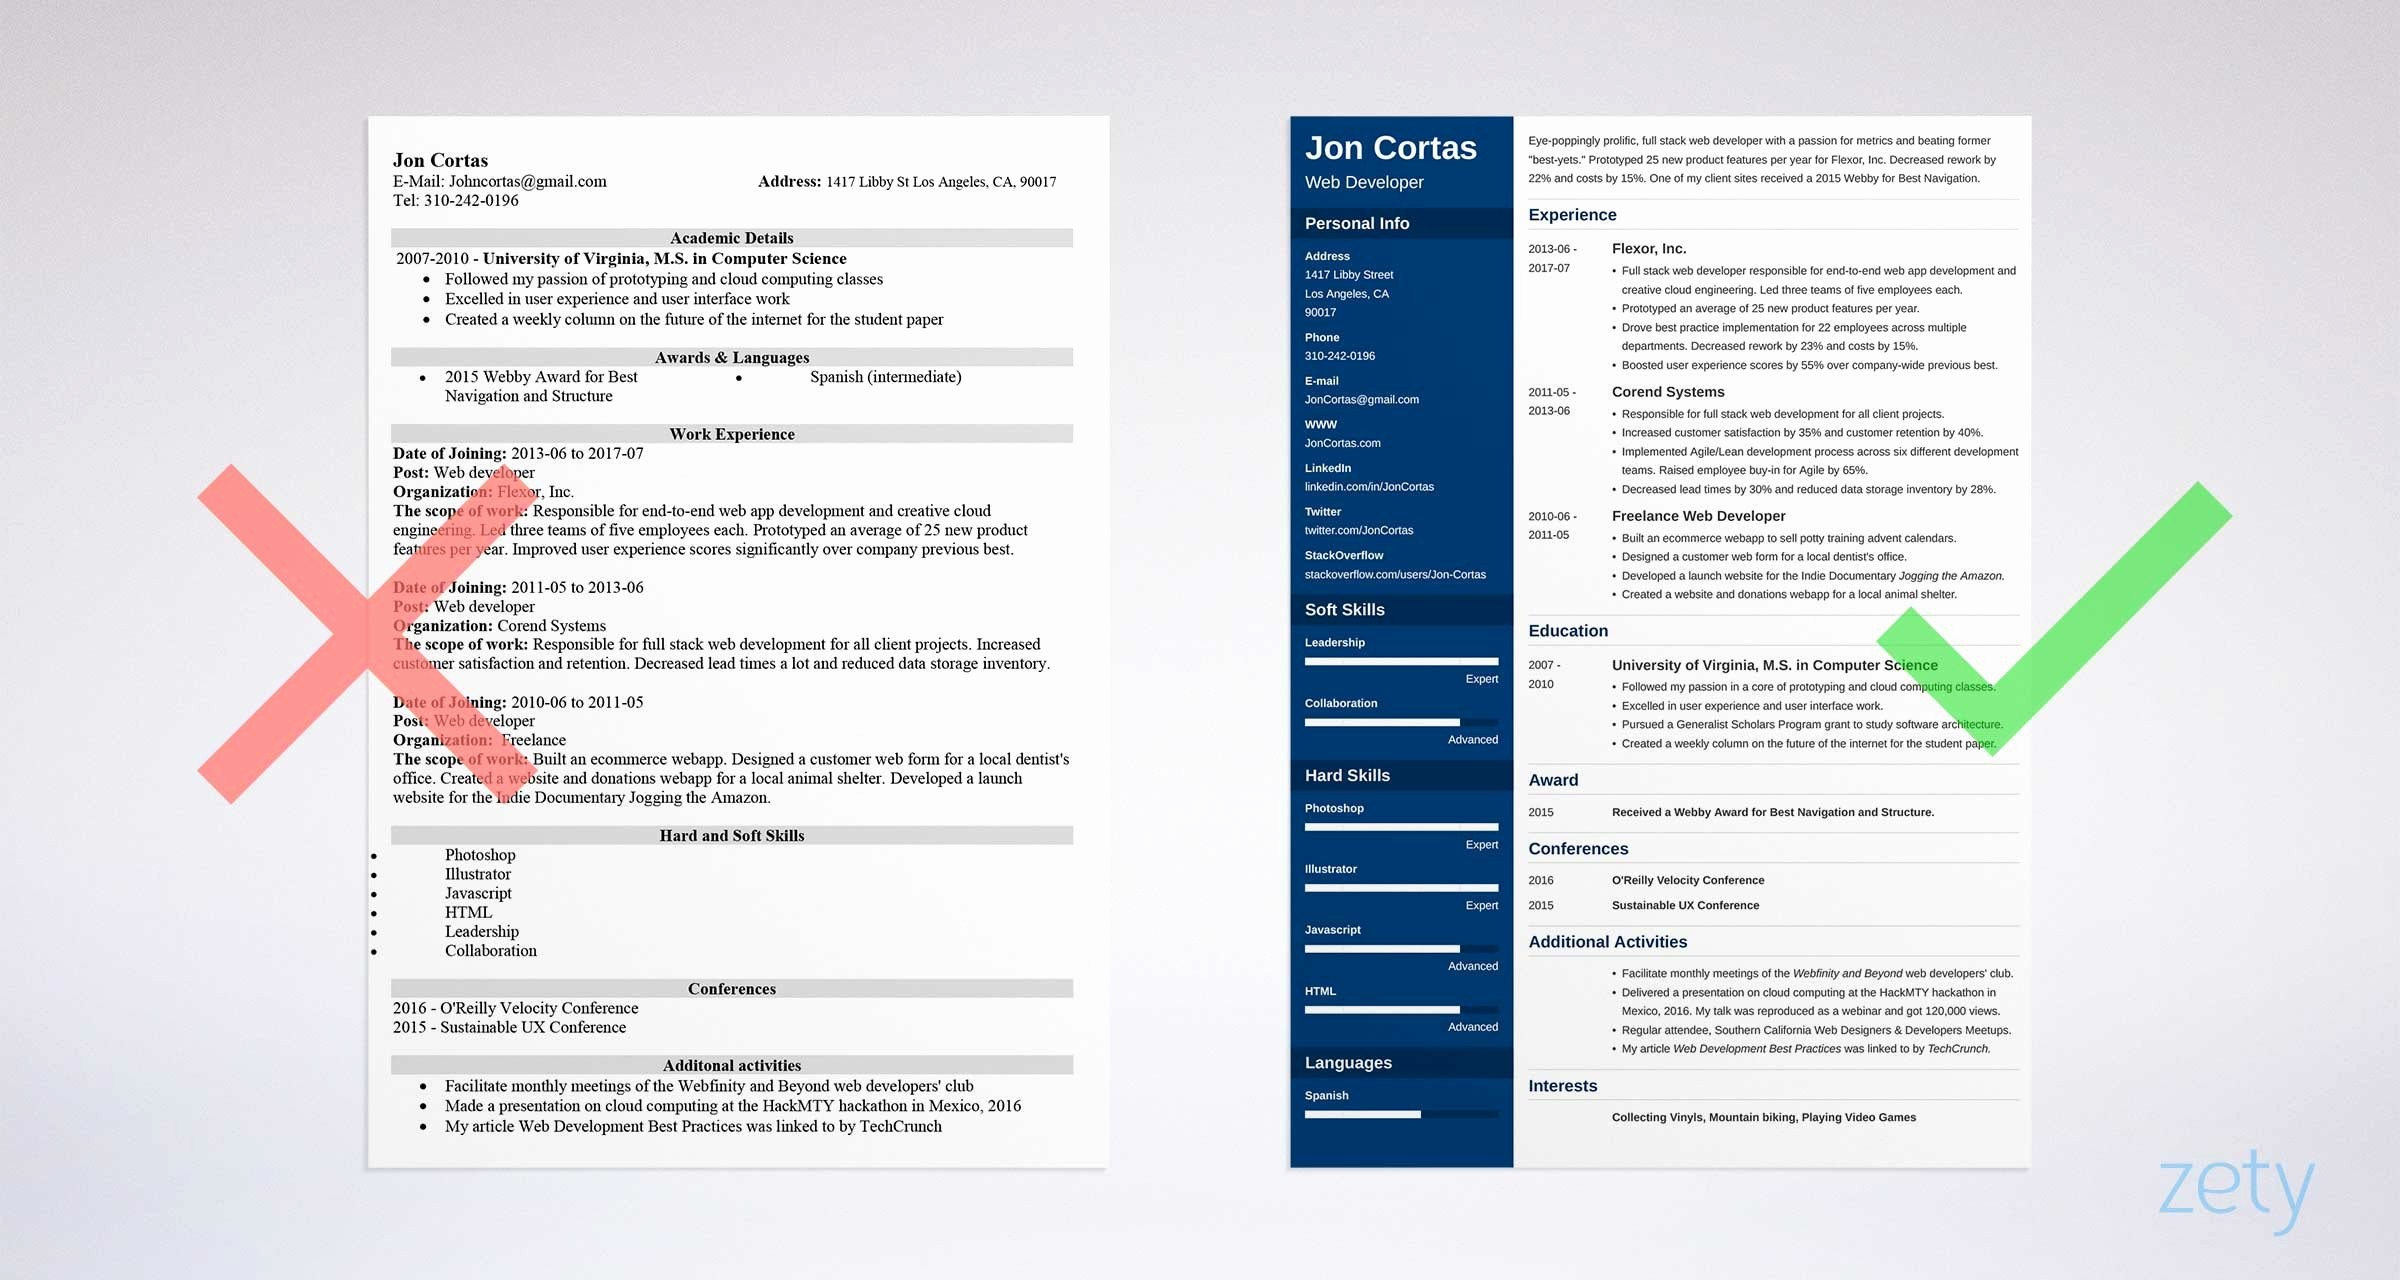 Resume Templates for Word Free Elegant Free Resume Templates for Word 15 Cv Resume formats to